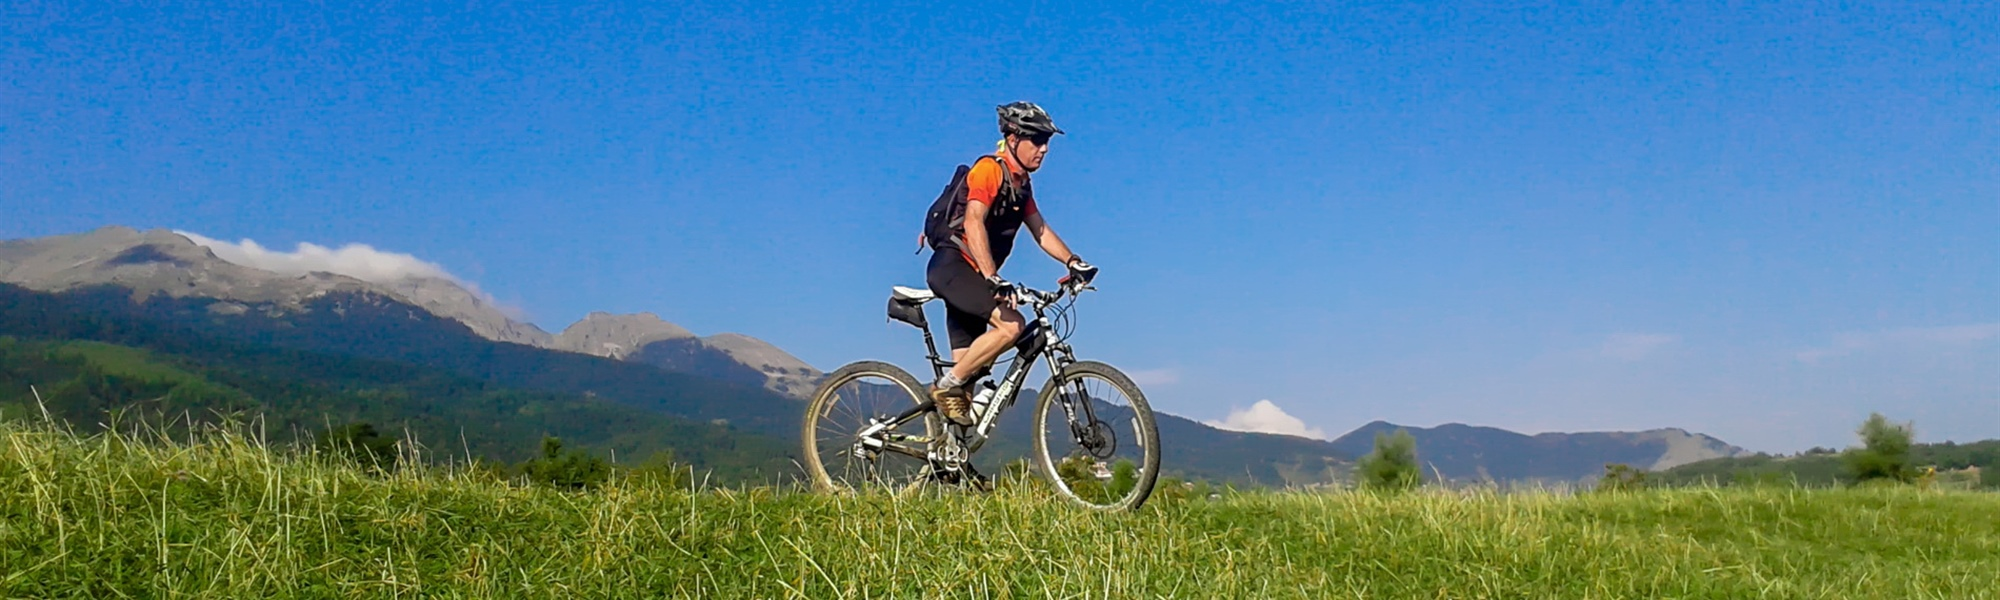 Mountain bike in Pindos mountains, Thessaly